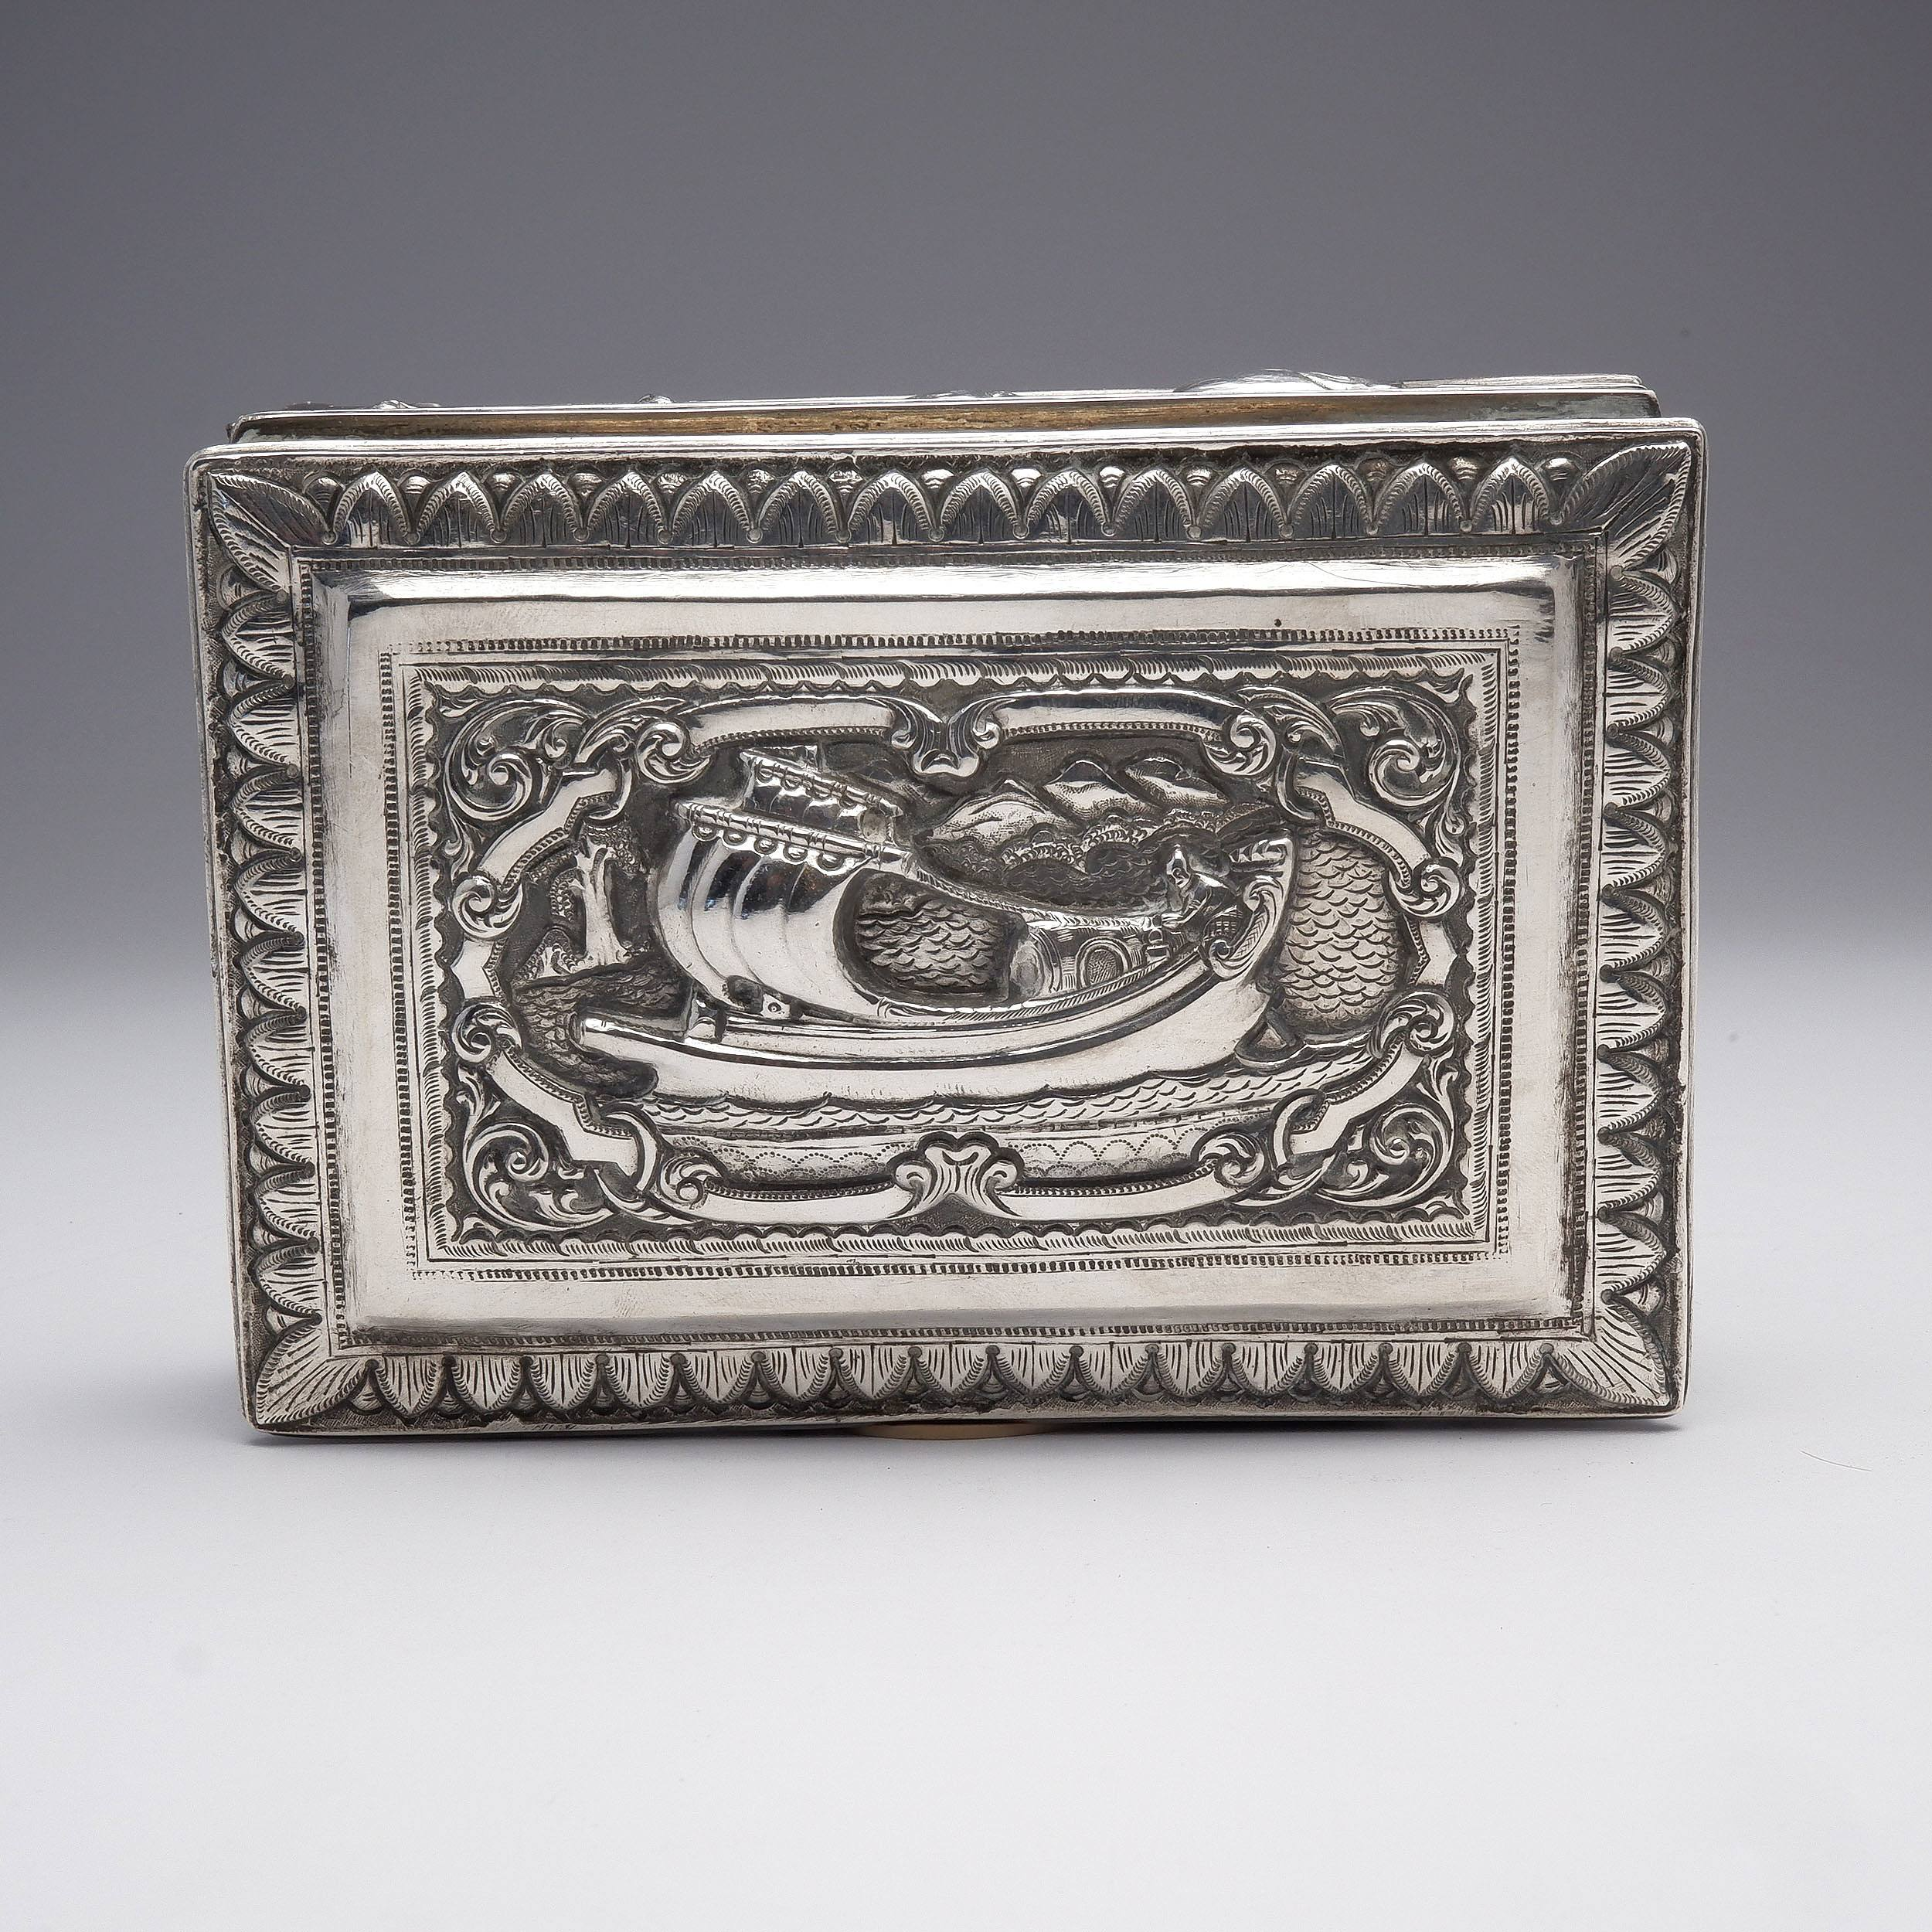 'Burmese 950 Silver Heavily Repousse Box with Discrete Inscription From Deputy Prime Minister'